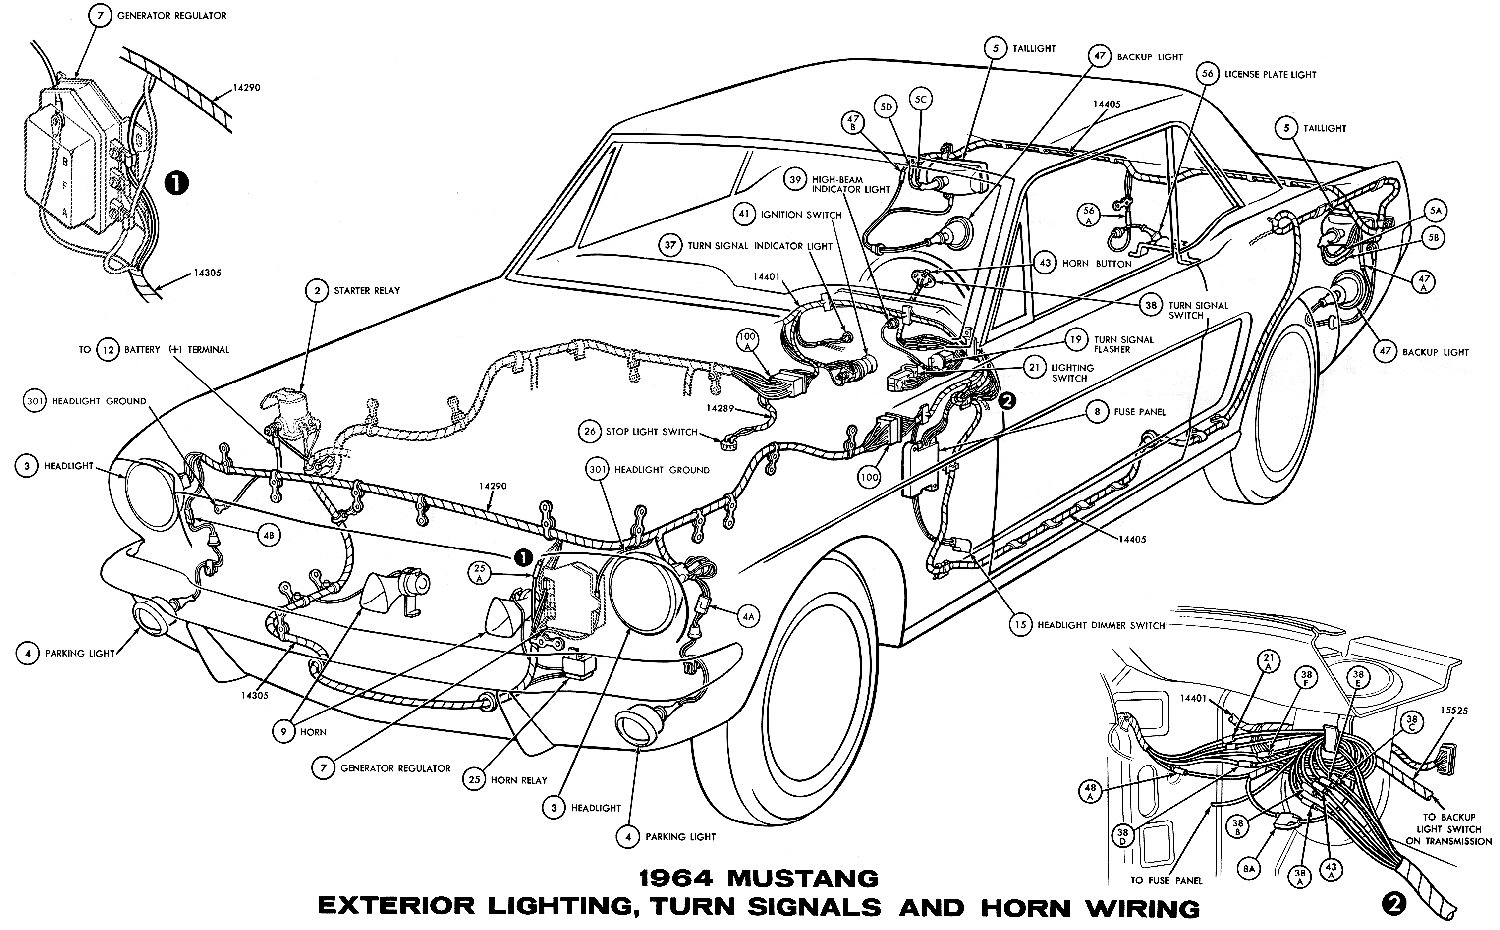 1964h 1964 mustang wiring diagrams average joe restoration 1965 mustang turn signal wiring diagram at soozxer.org